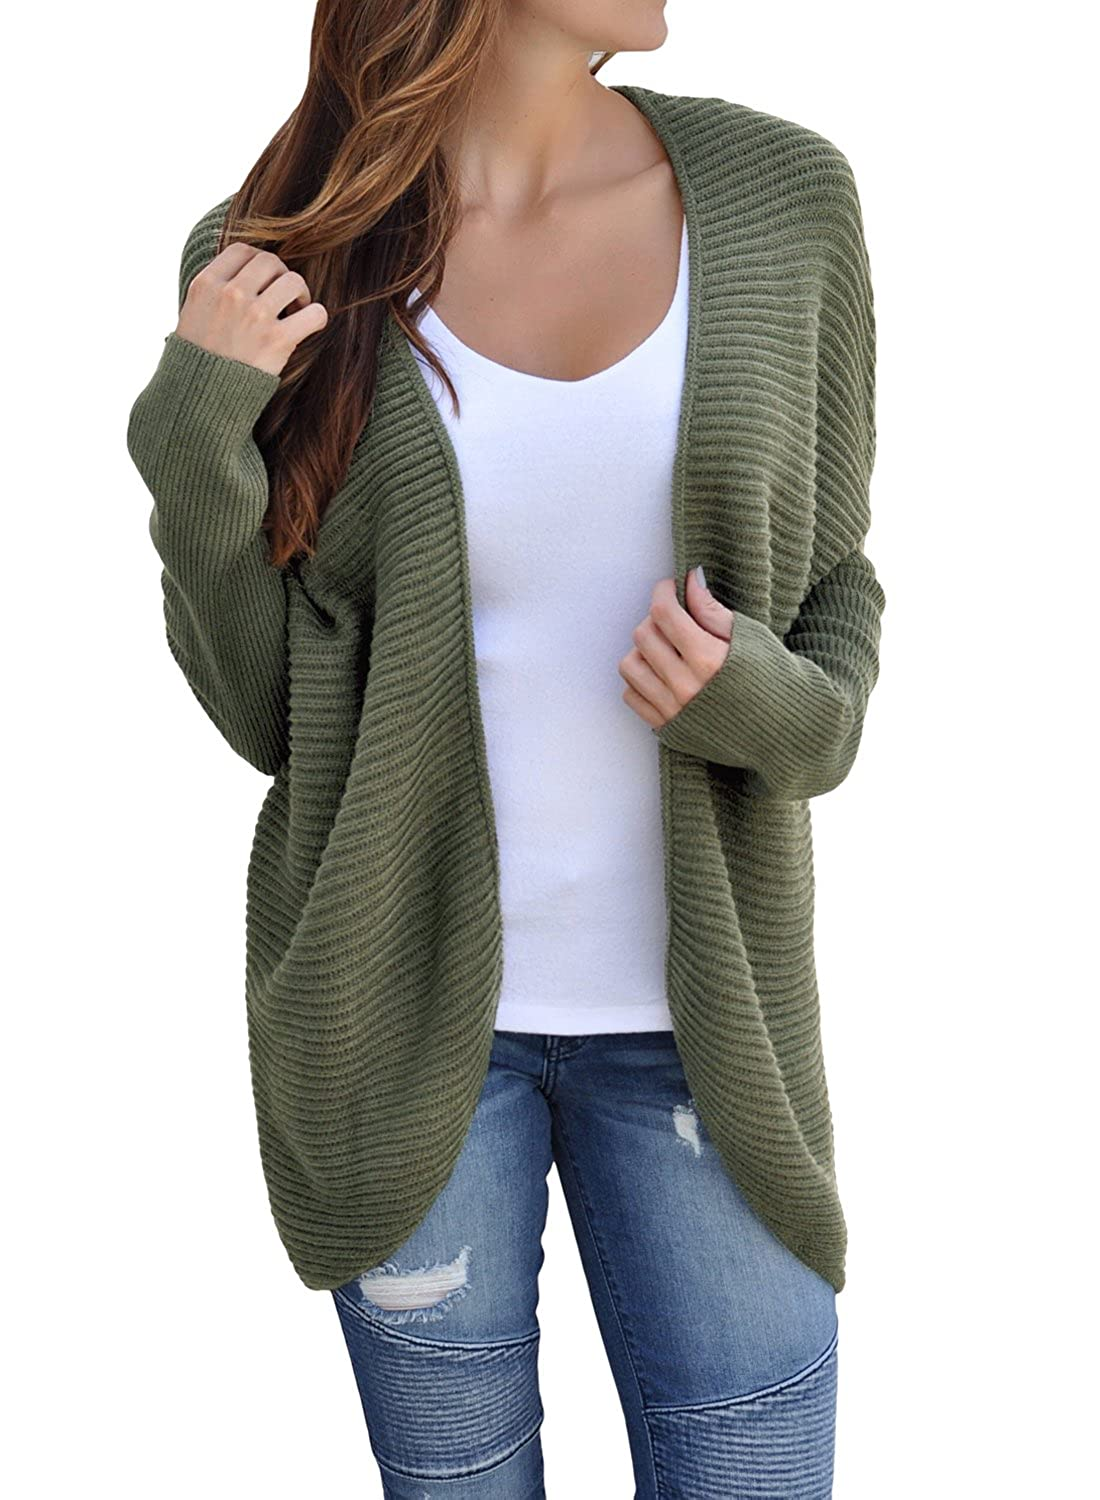 Dearlove Women s Casual Dolman Sleeve Open Front Knit Cardigan Sweaters  S-XXL at Amazon Women s Clothing store  bcee702cb